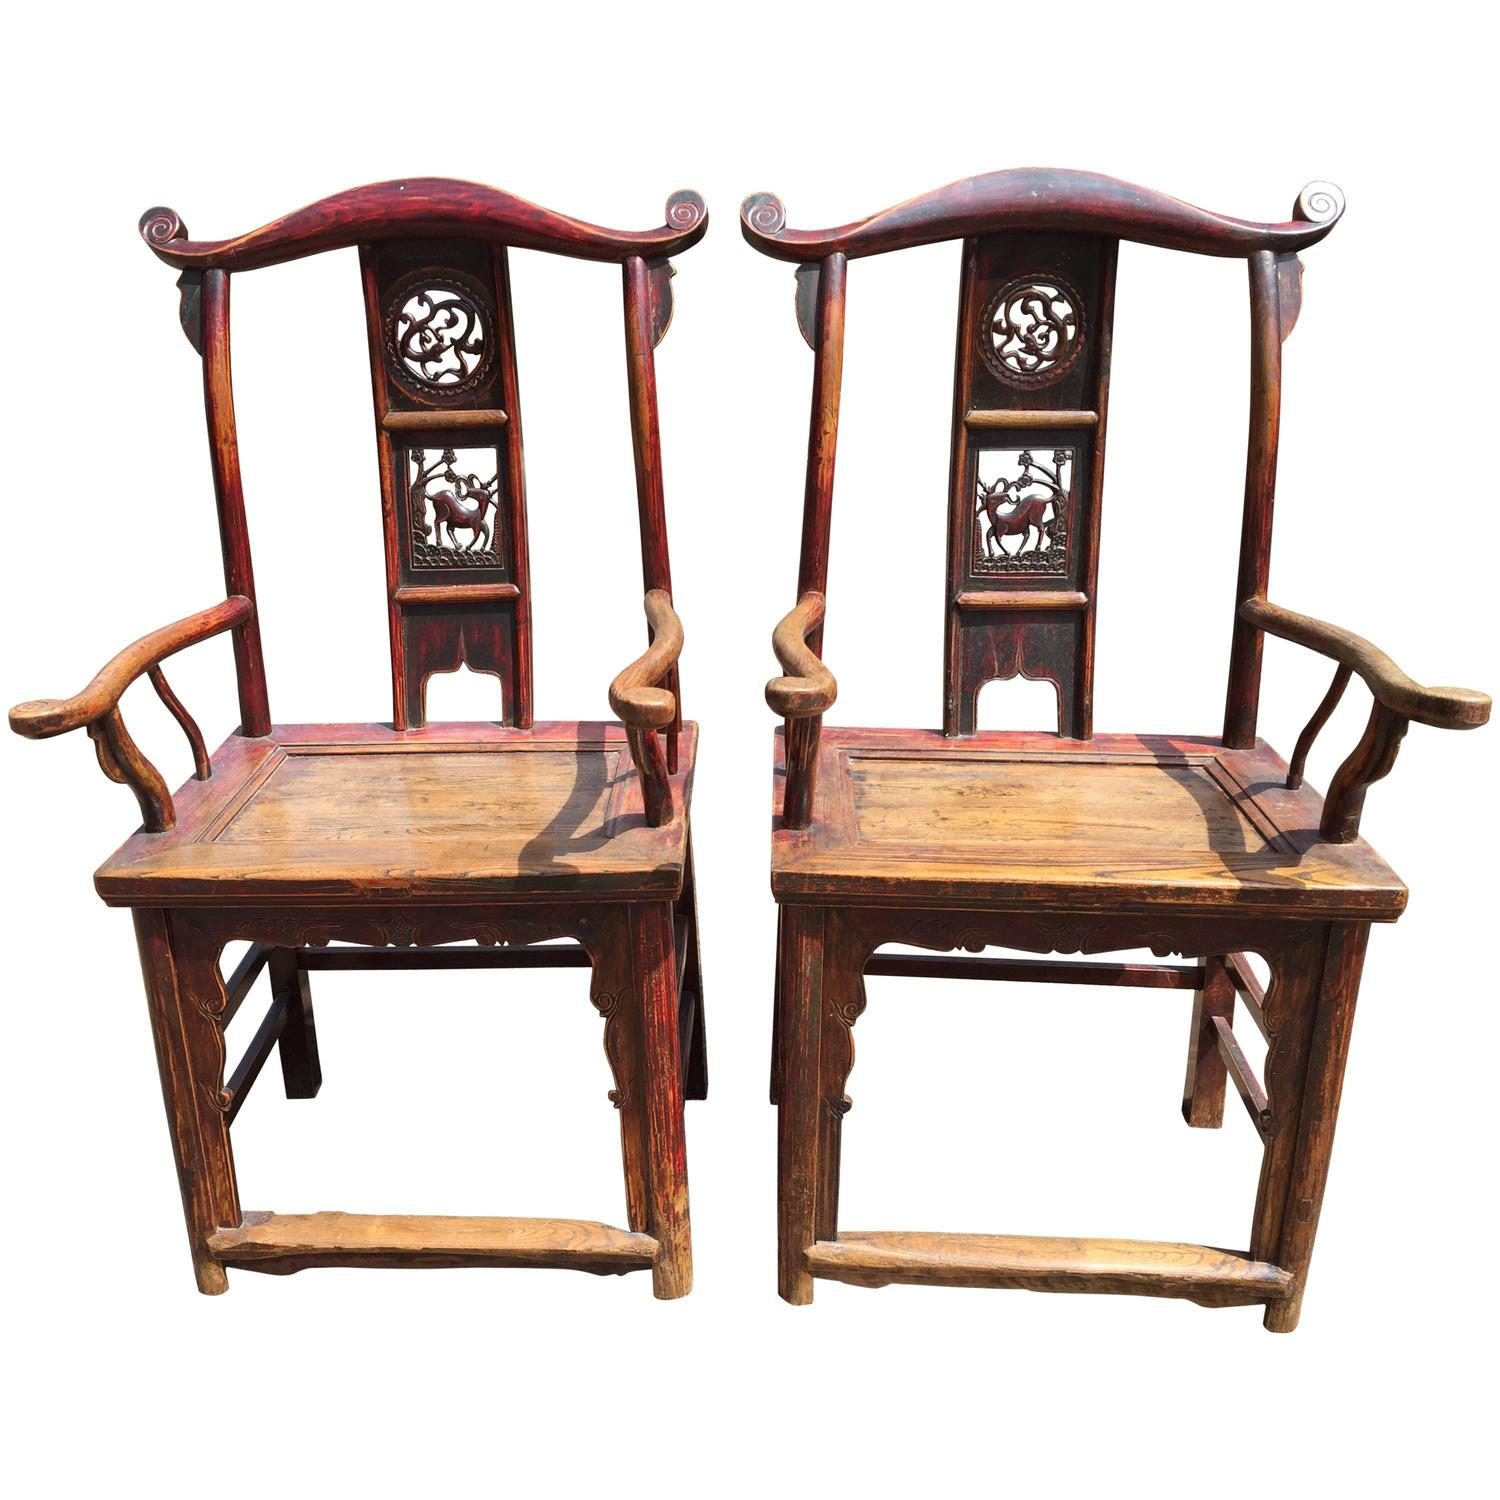 Chinese antique pair scholar chairs qing dynasty 19th century for sale at 1stdibs